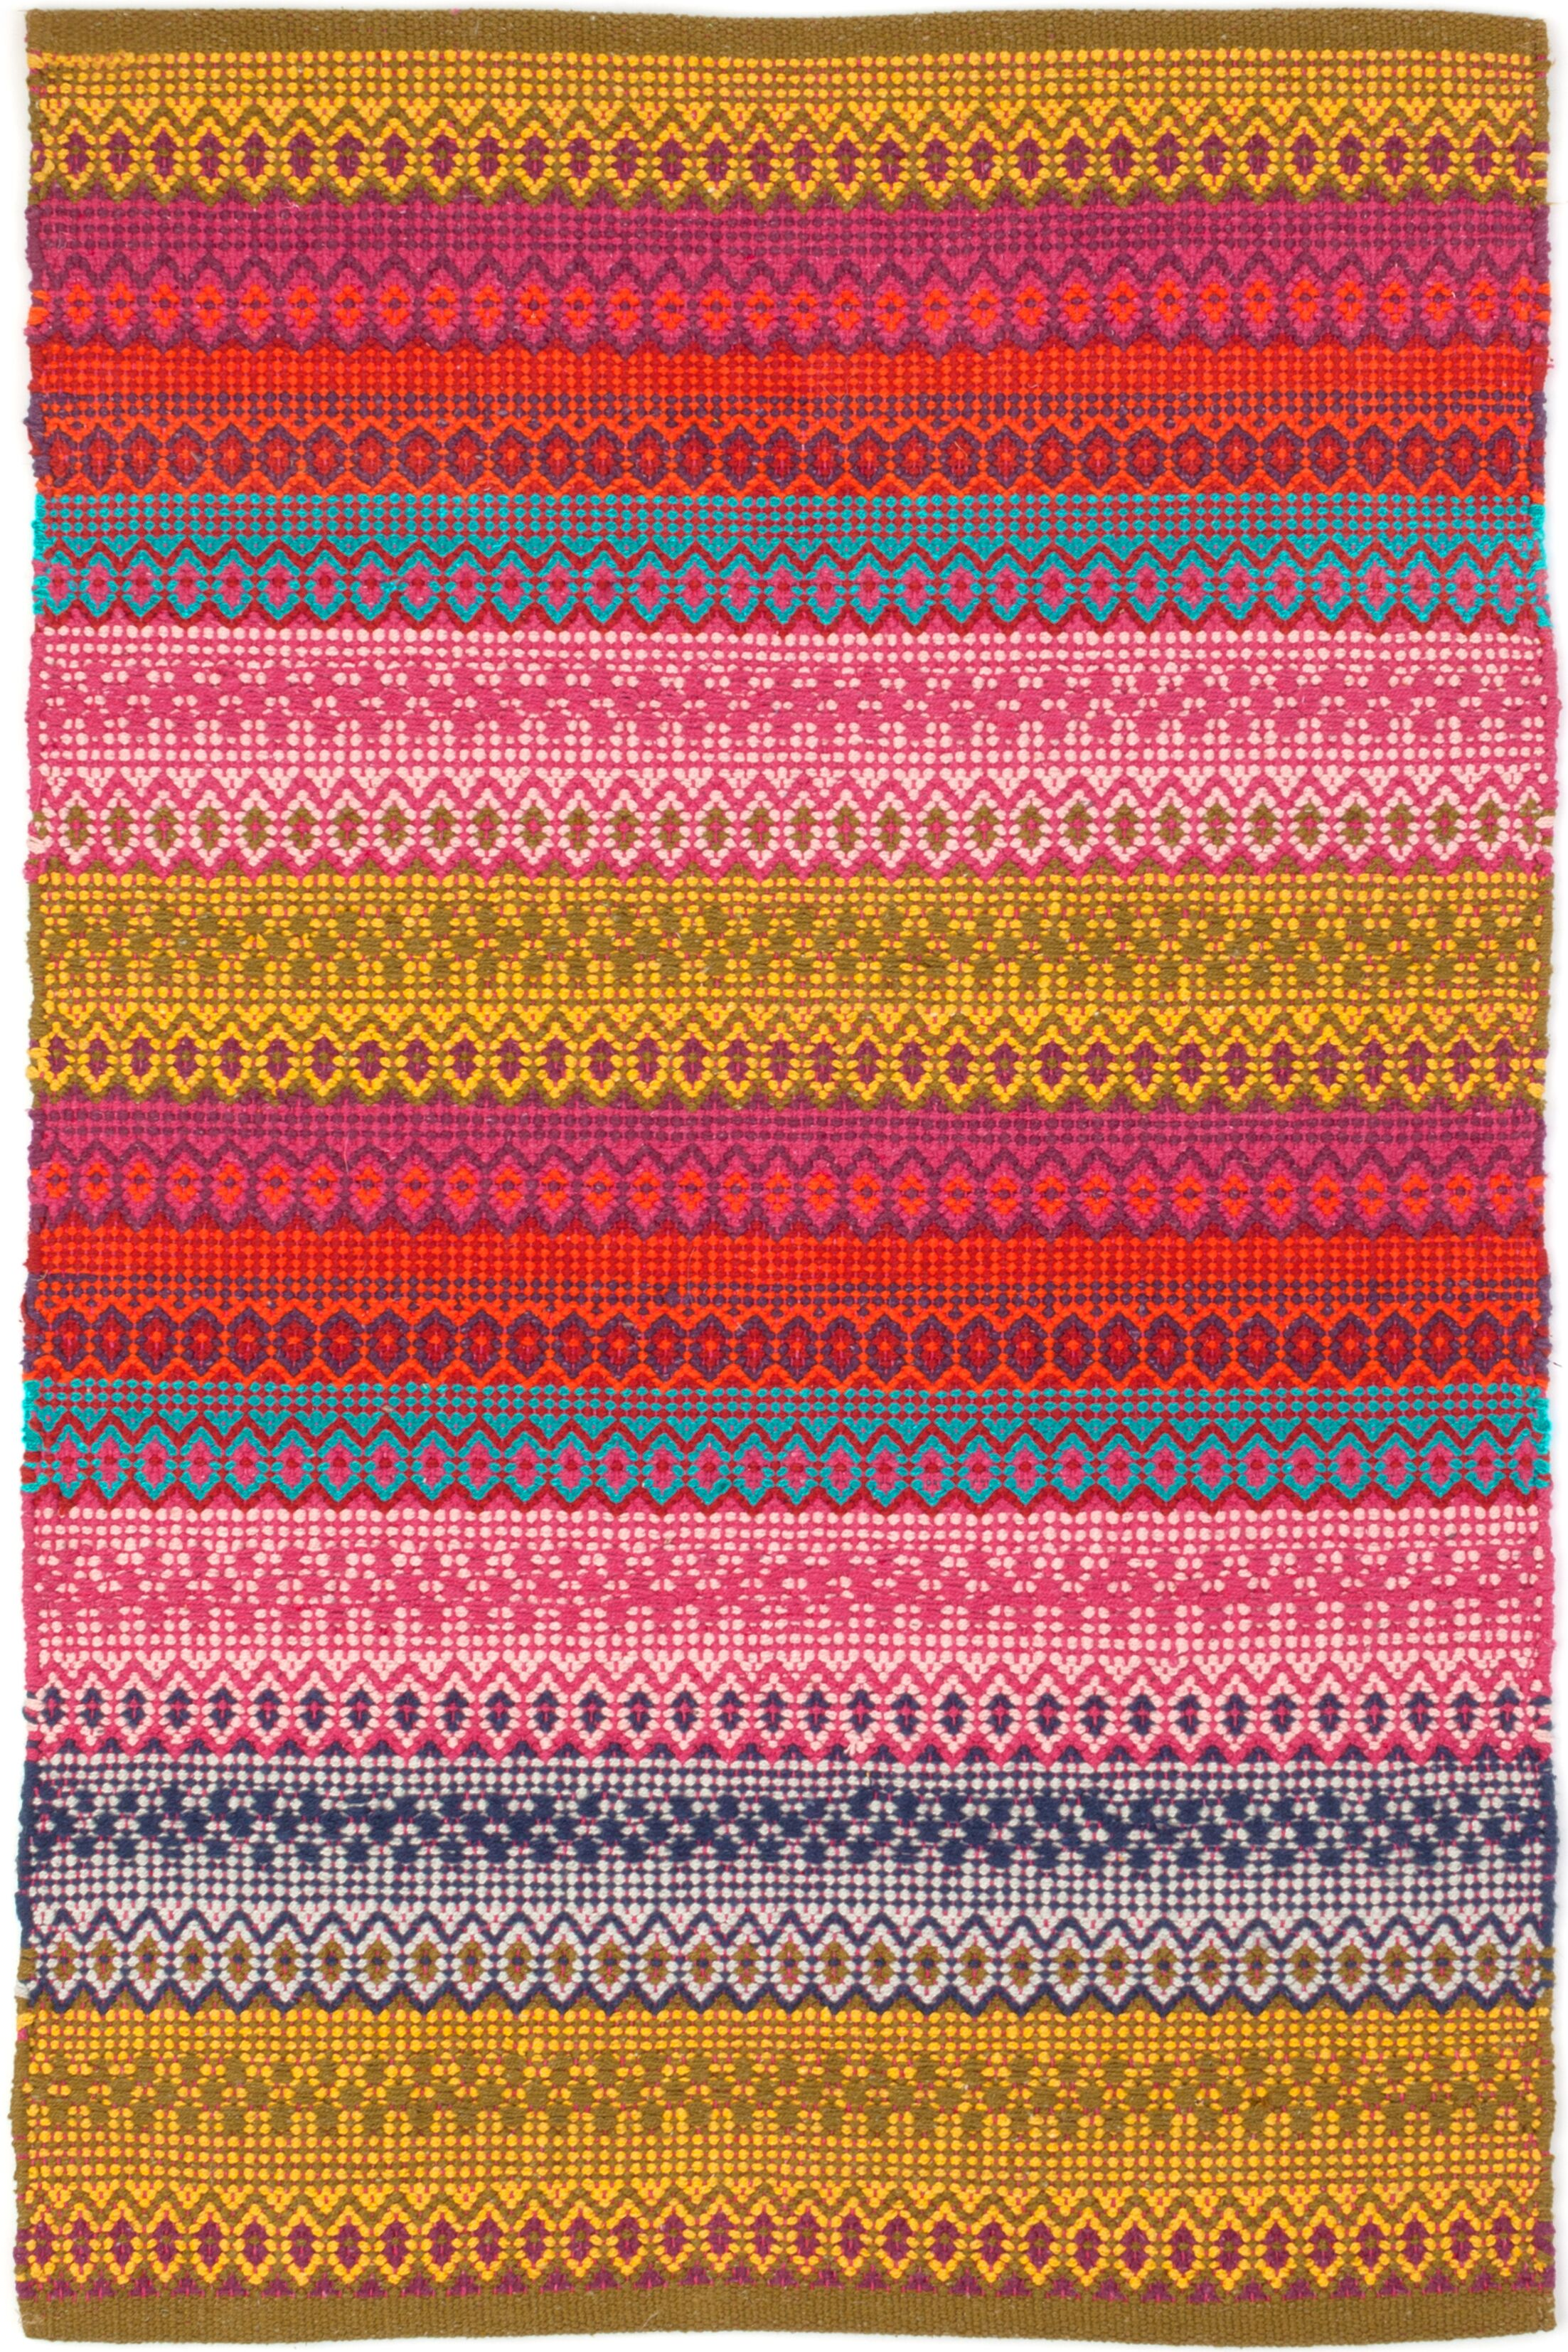 Gypsy Hand Woven Area Rug Rug Size: Rectangle 4' x 6'